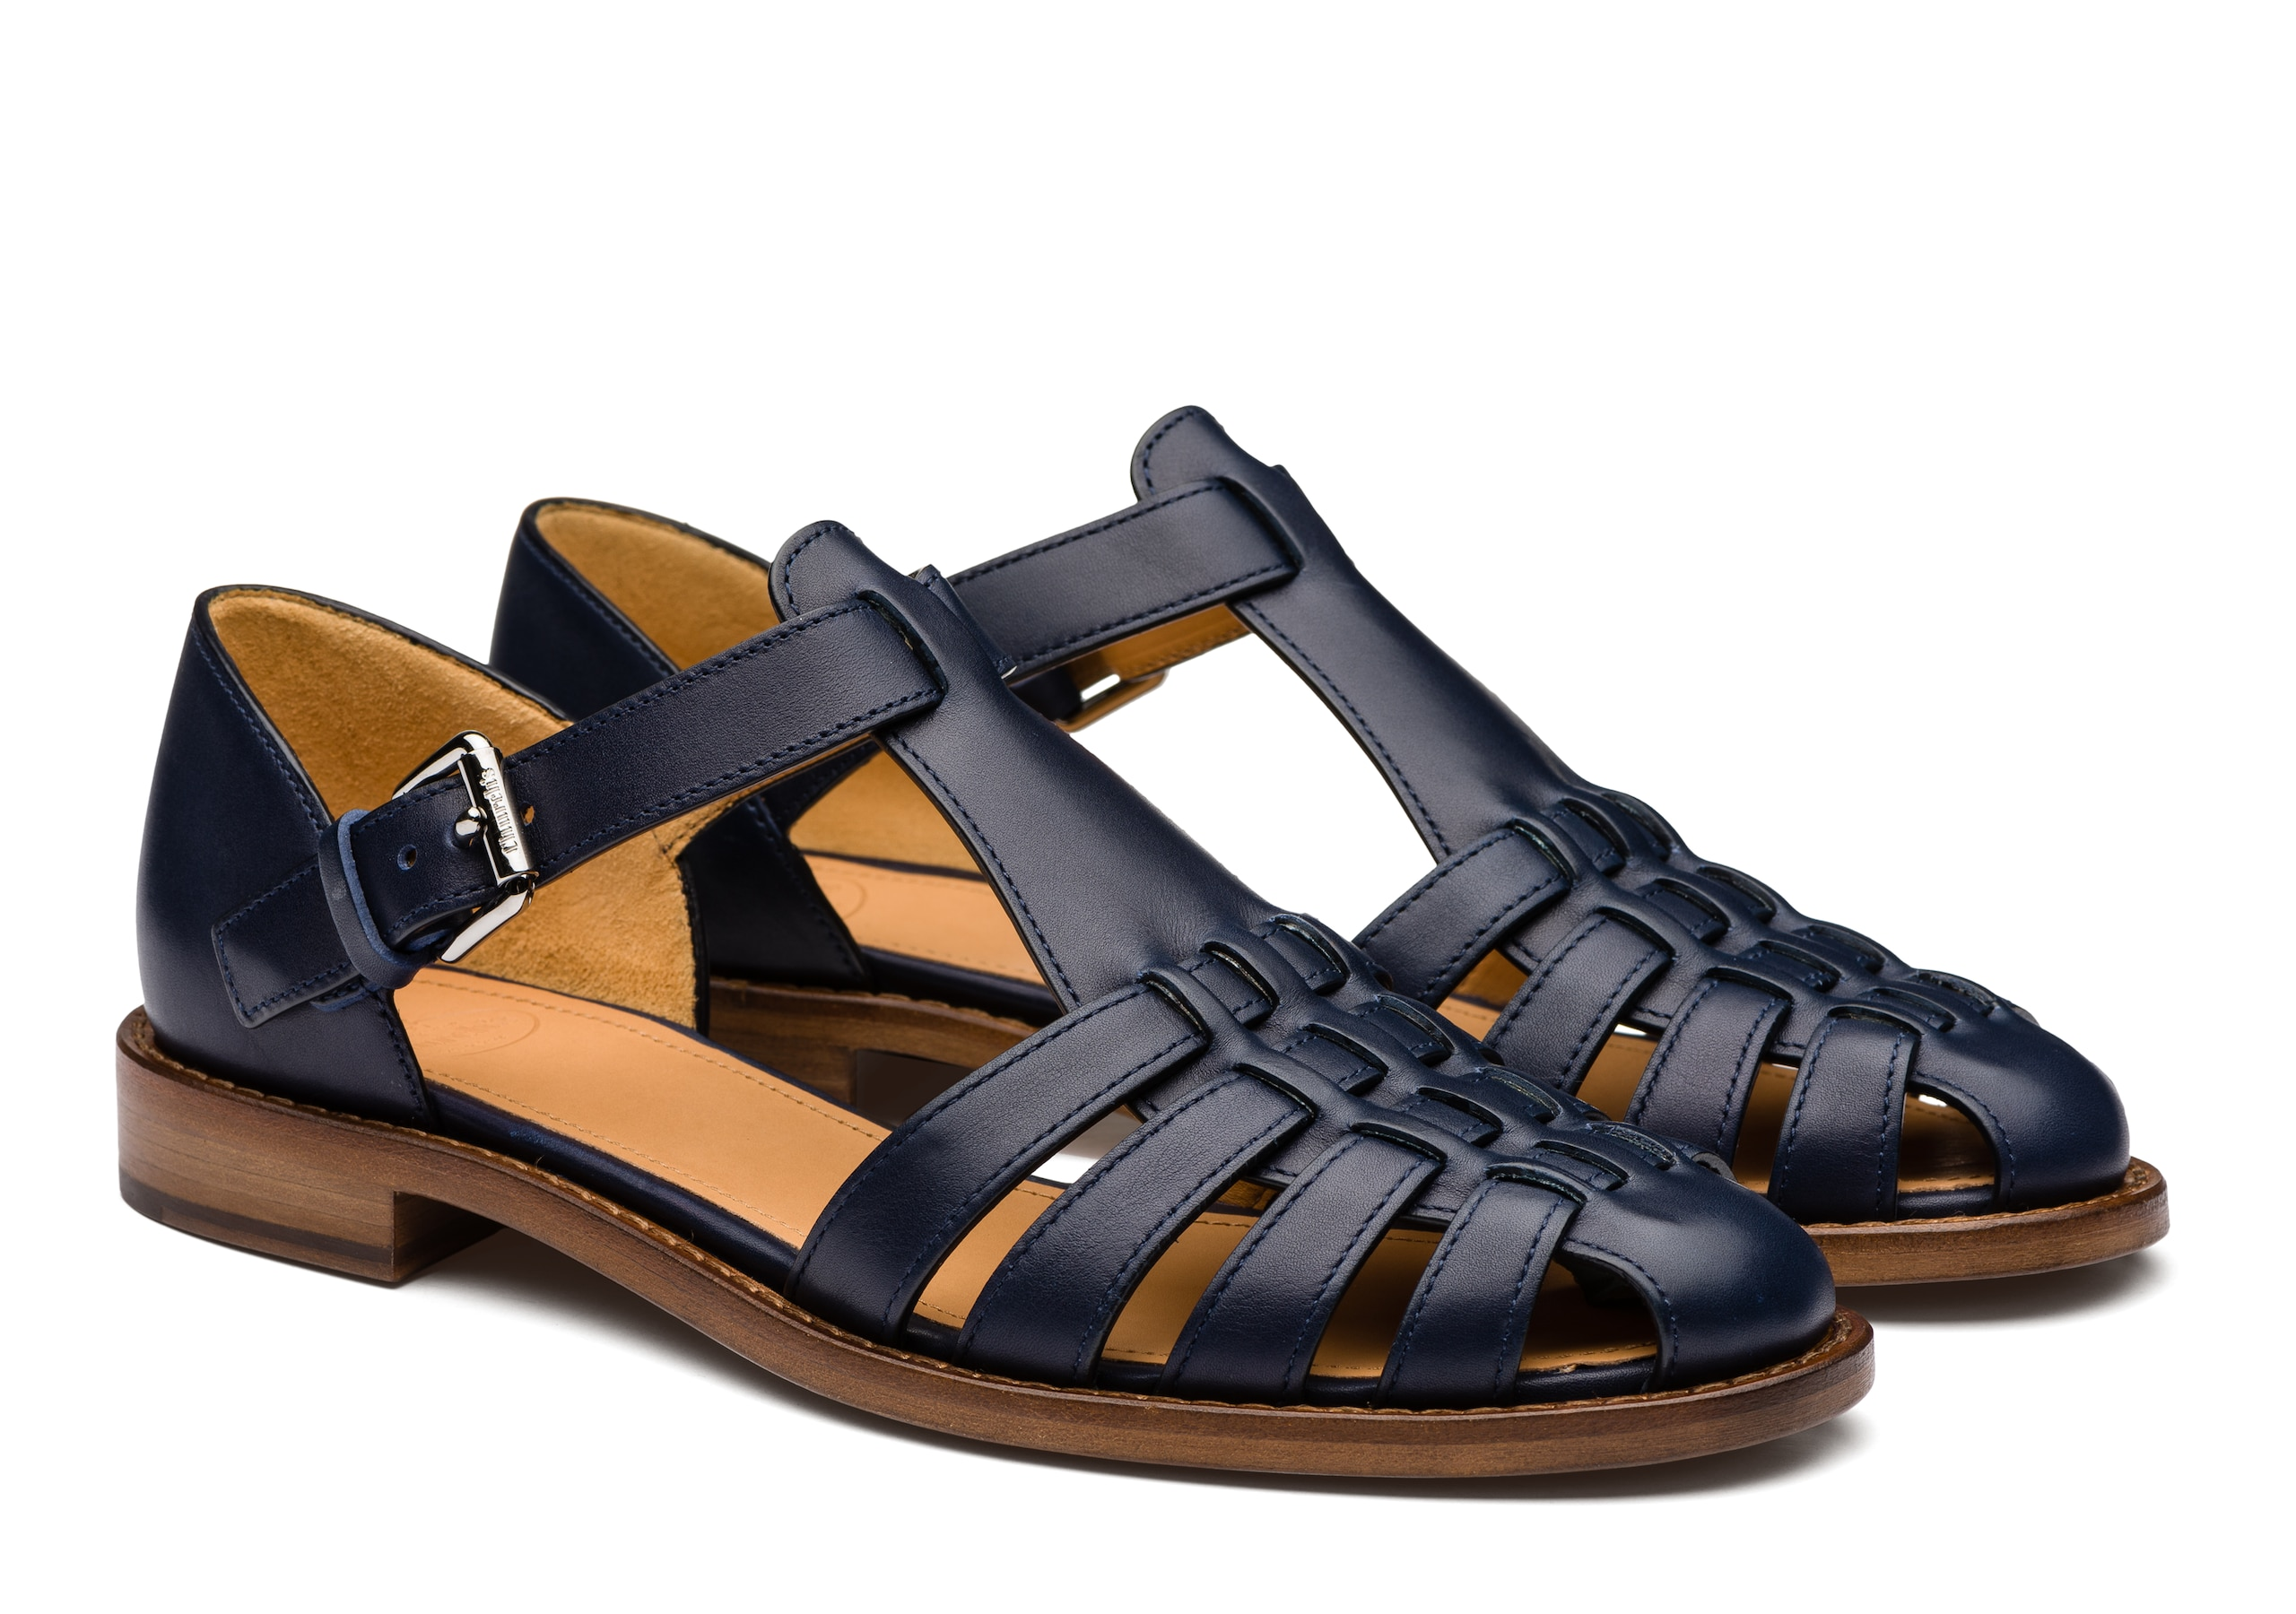 Kelsey Church's Prestige Calf Leather Sandal Blue